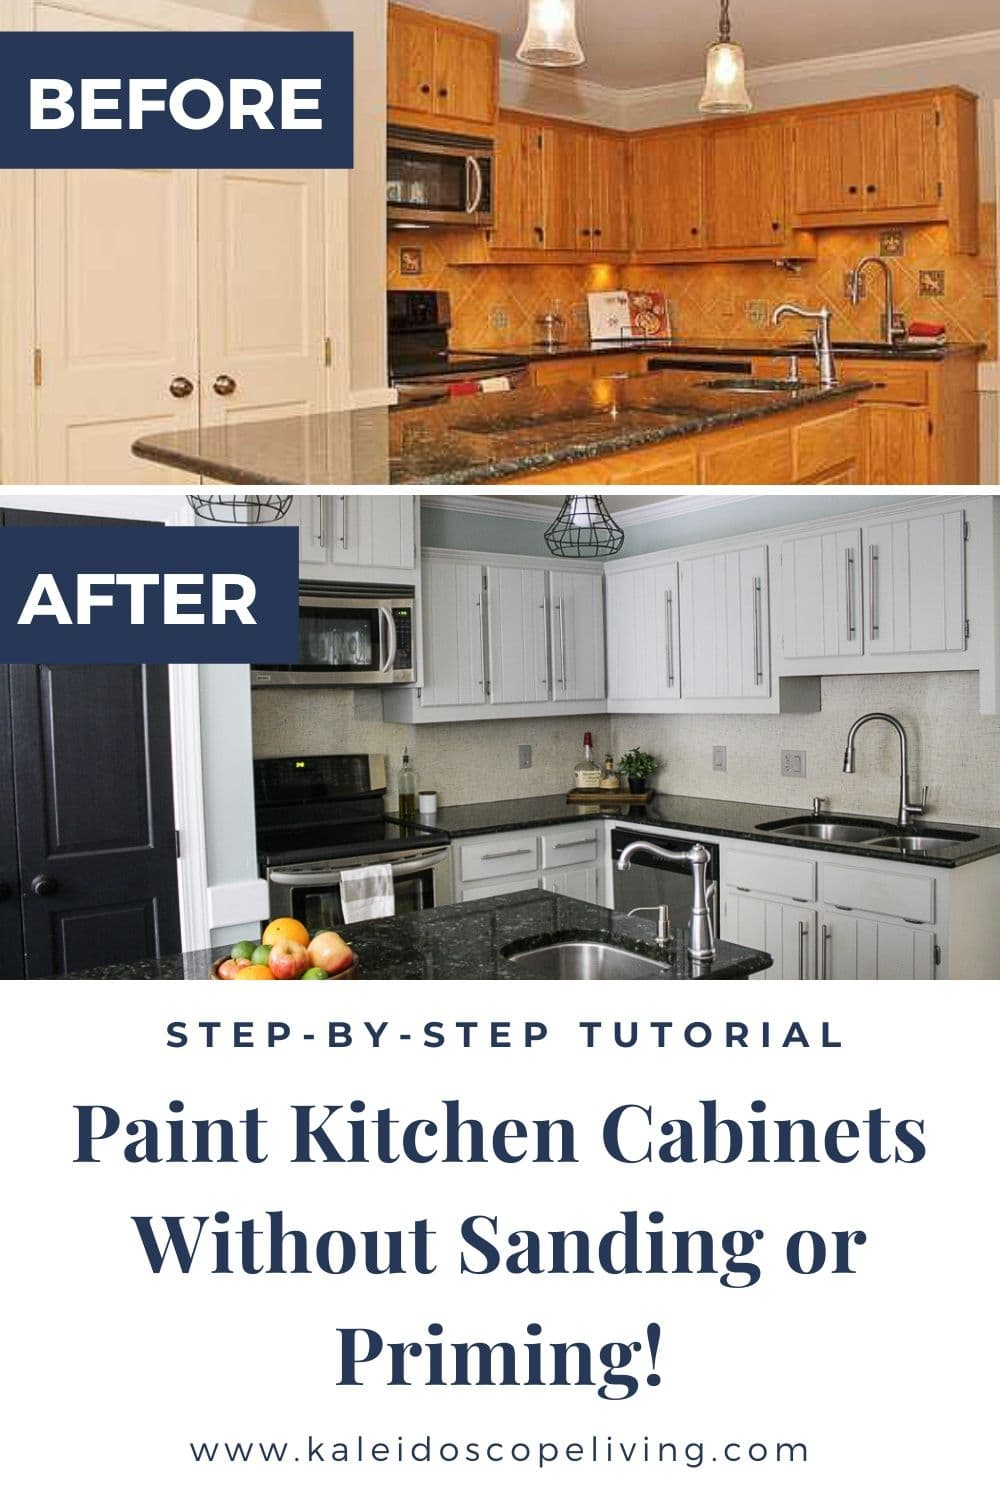 How To Paint Kitchen Cabinets Without Sanding Or Priming Step By Step In 2020 Painting Kitchen Cabinets Kitchen Cabinets Kitchen Paint